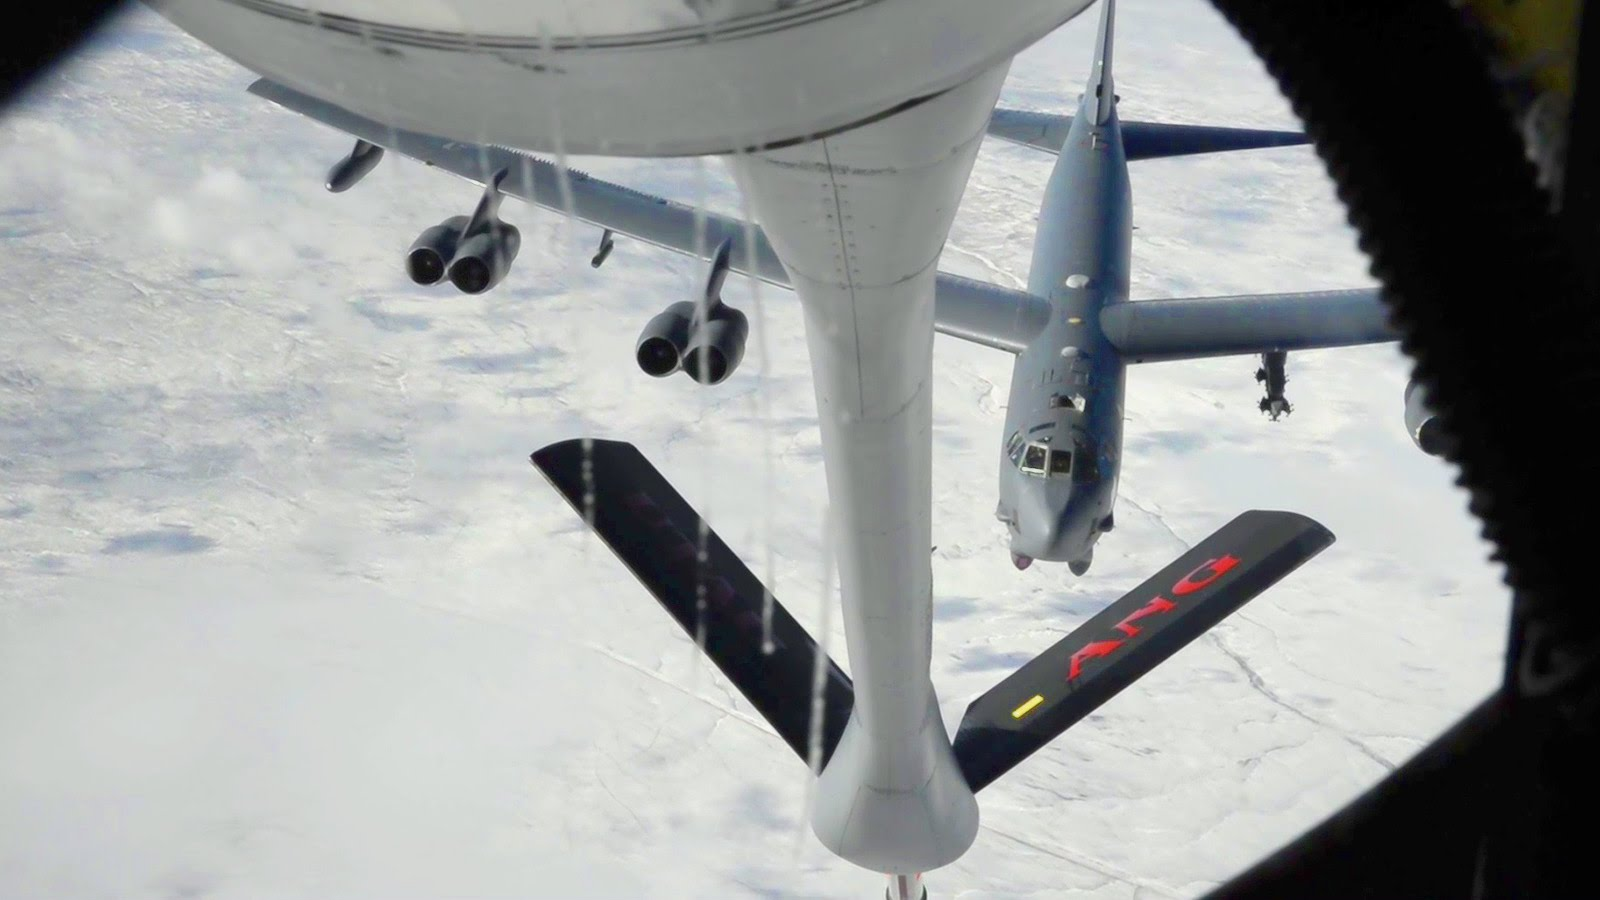 Air Refueling: B-52 Stratofortress